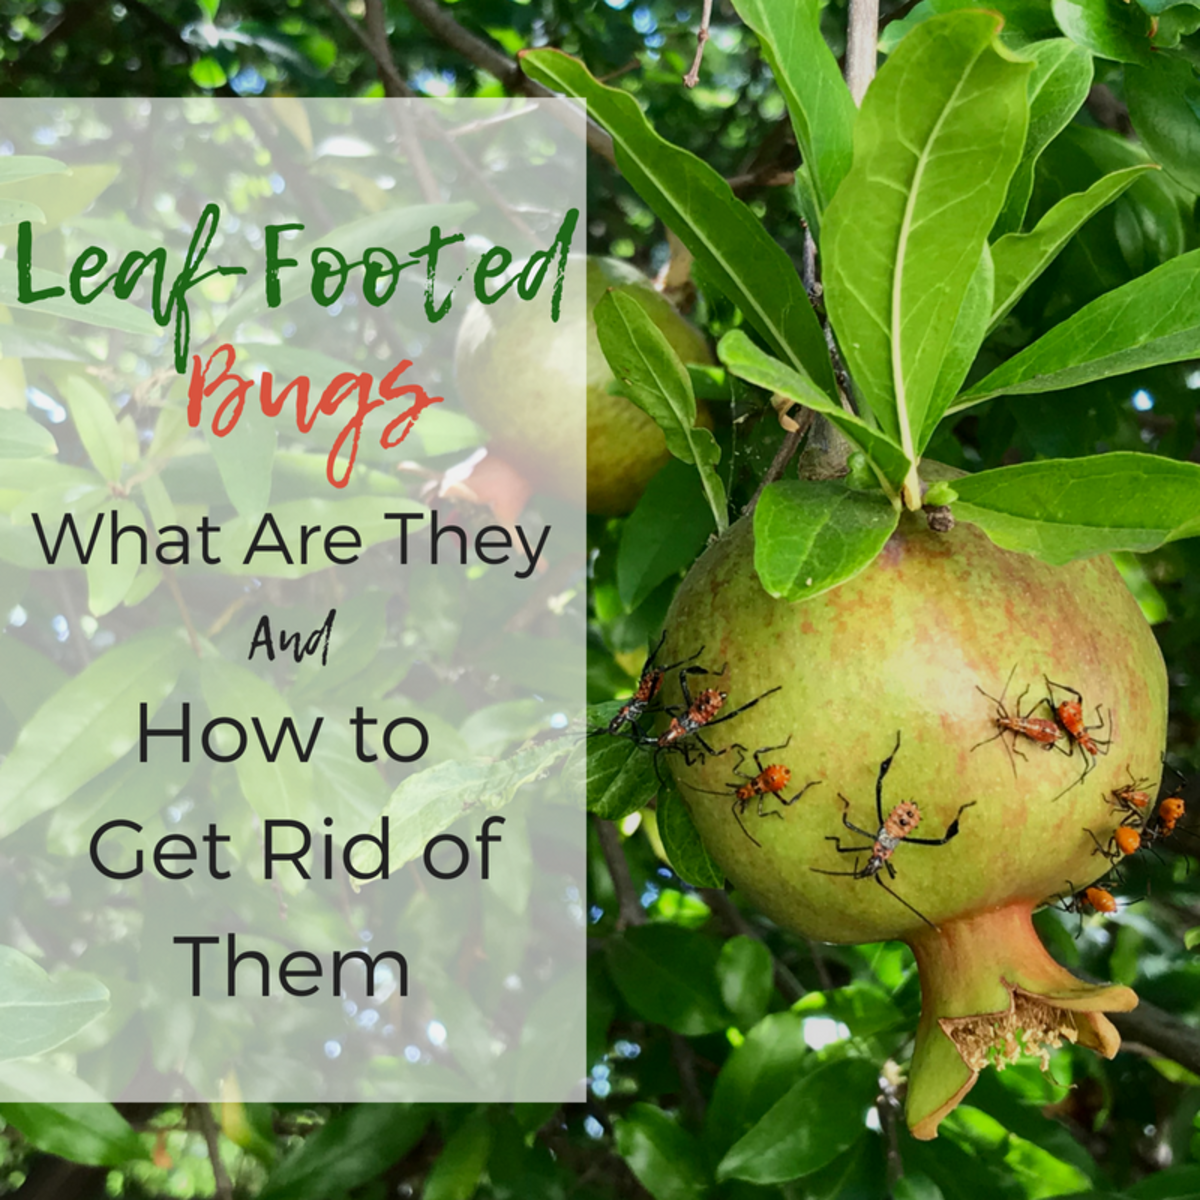 What Are Leaf-Footed Bugs and Are They Harmful?